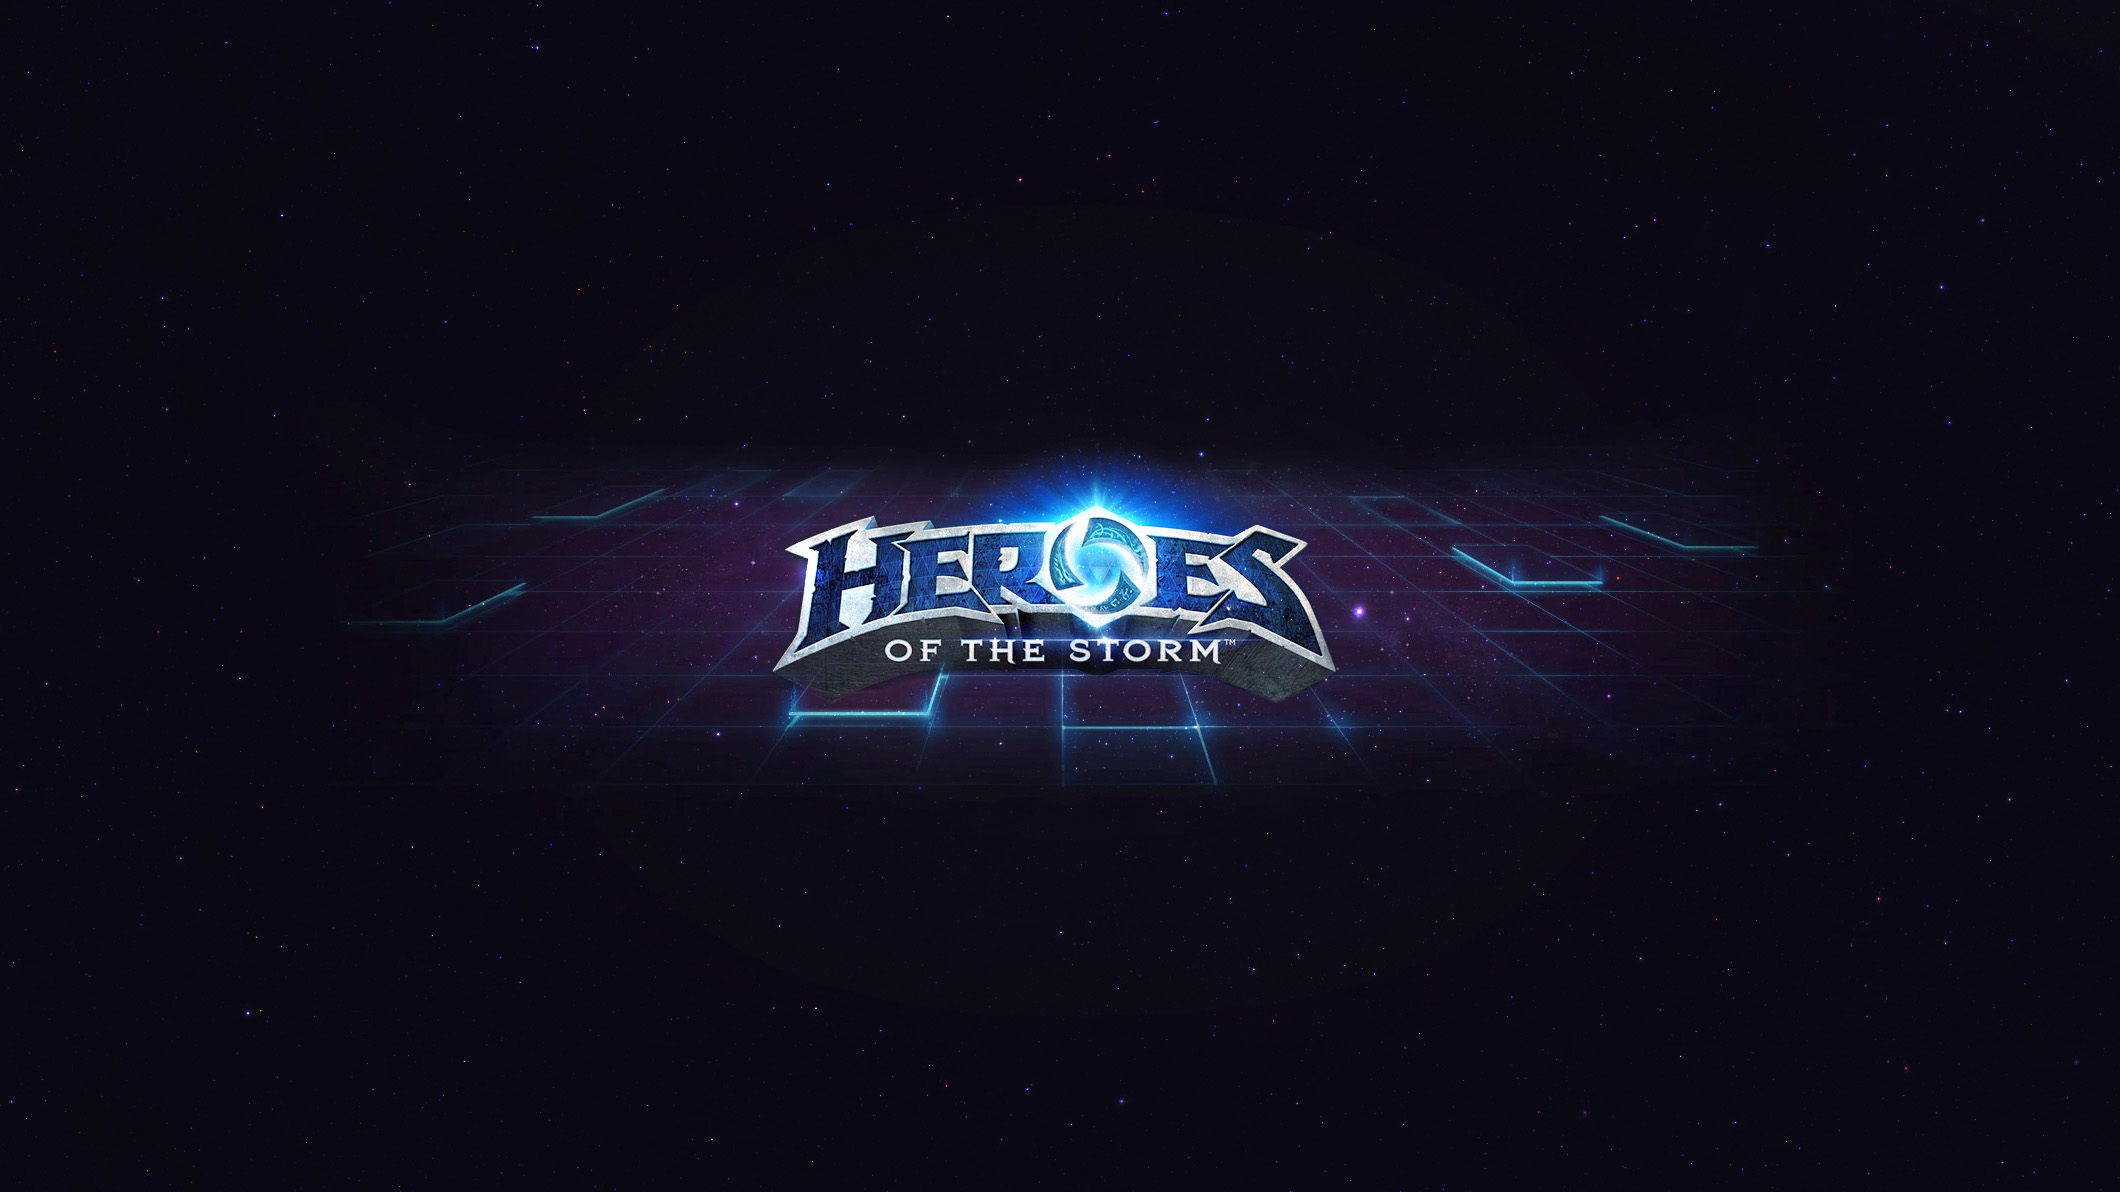 Heroes of the Storm wallpaper 4